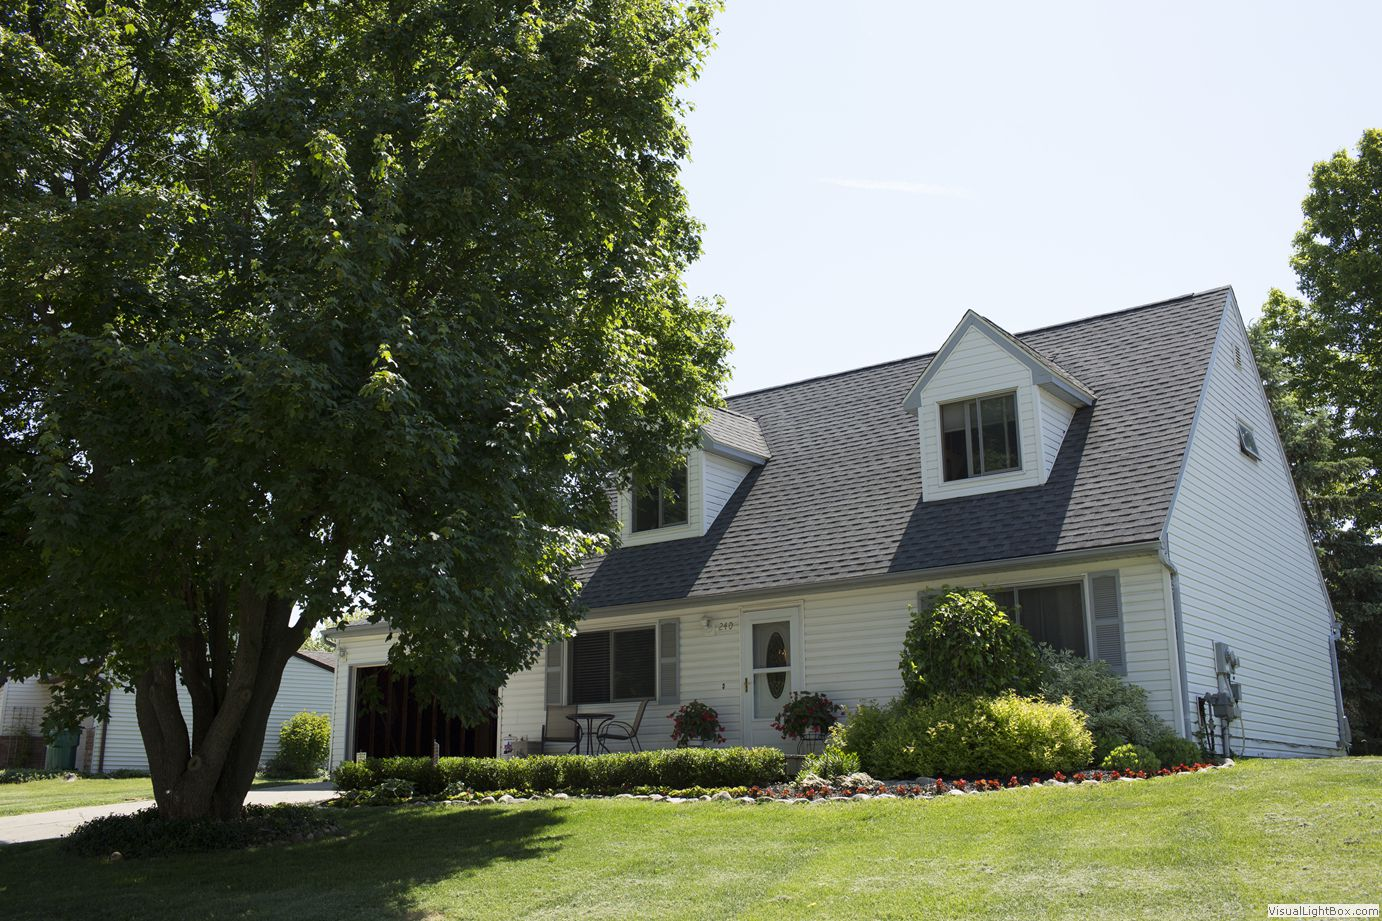 Woodlake Drive- Brighton - $176,500   DOM 1 / Sold for 100% of asking price / 3 Showings